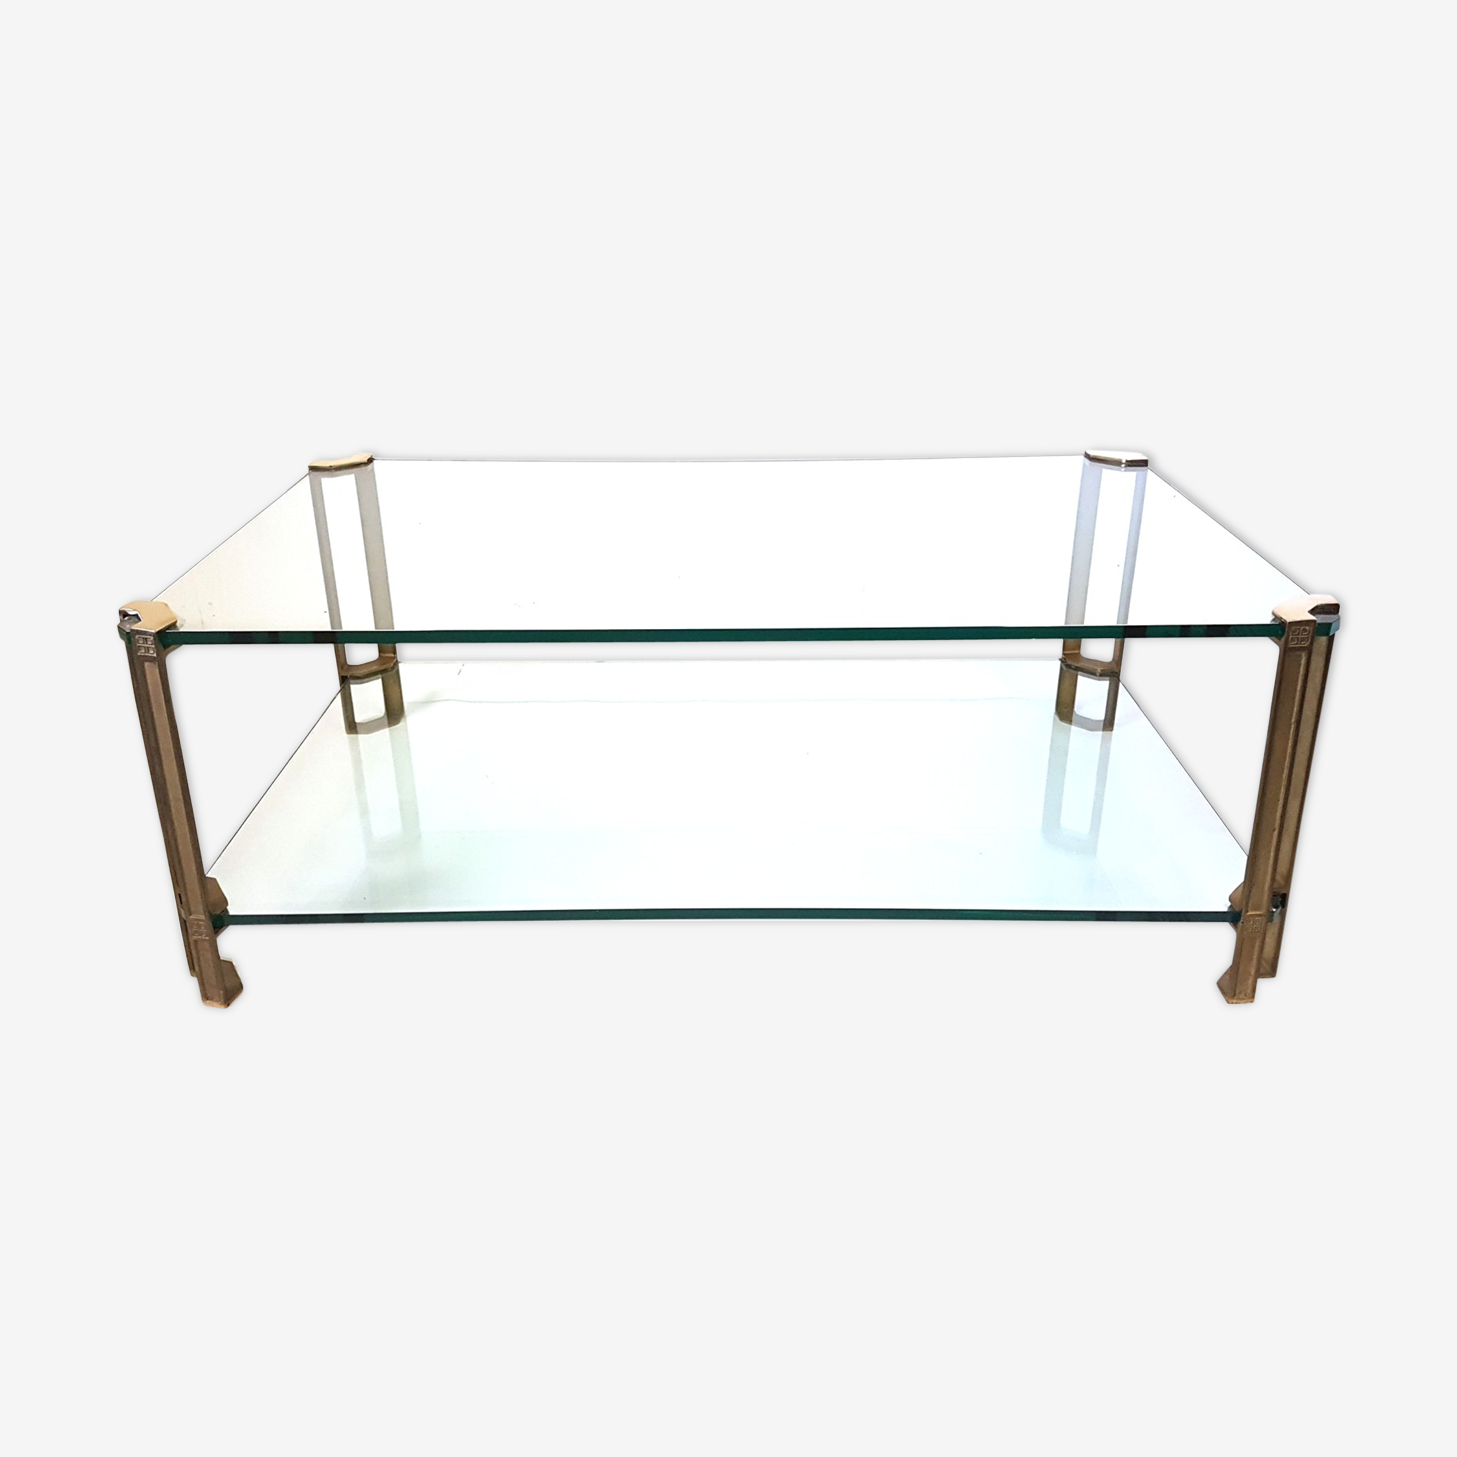 Brass and glass coffee table by Peter Ghyczy